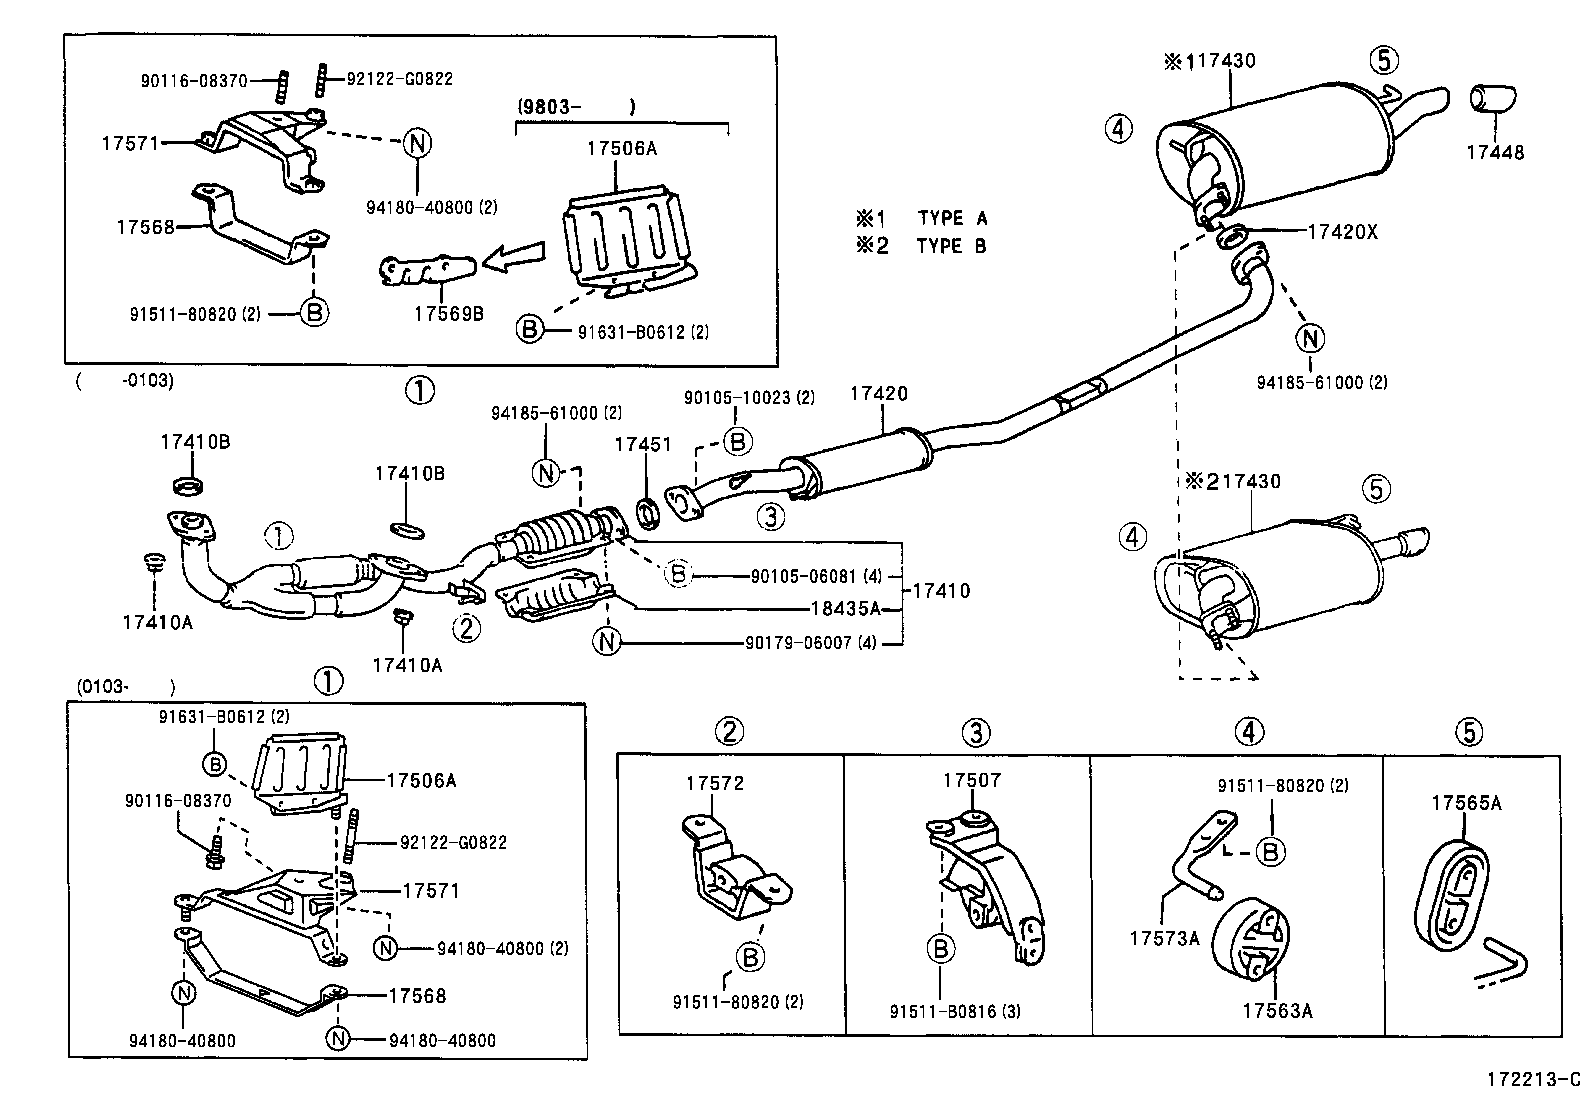 1999 toyota camry exhaust system diagram dpdt switch wiring guitar 2011 introduction to